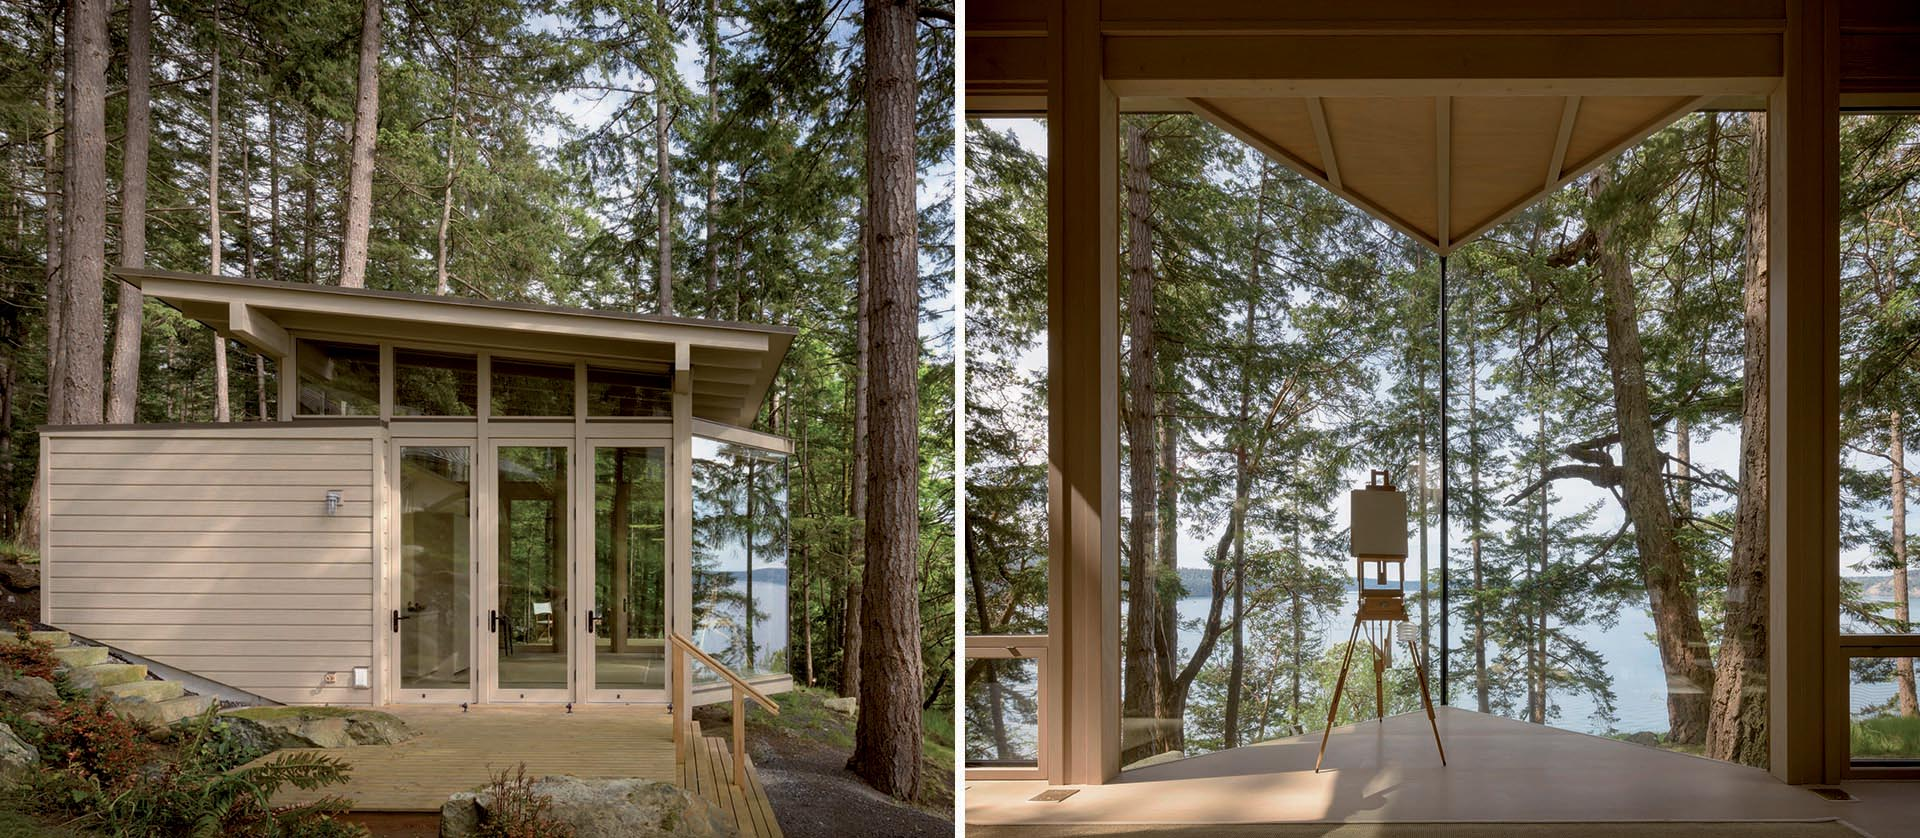 An Artist Cabin Surrounded By Trees And Water Is The Ideal Place To Find Creative Inspiration